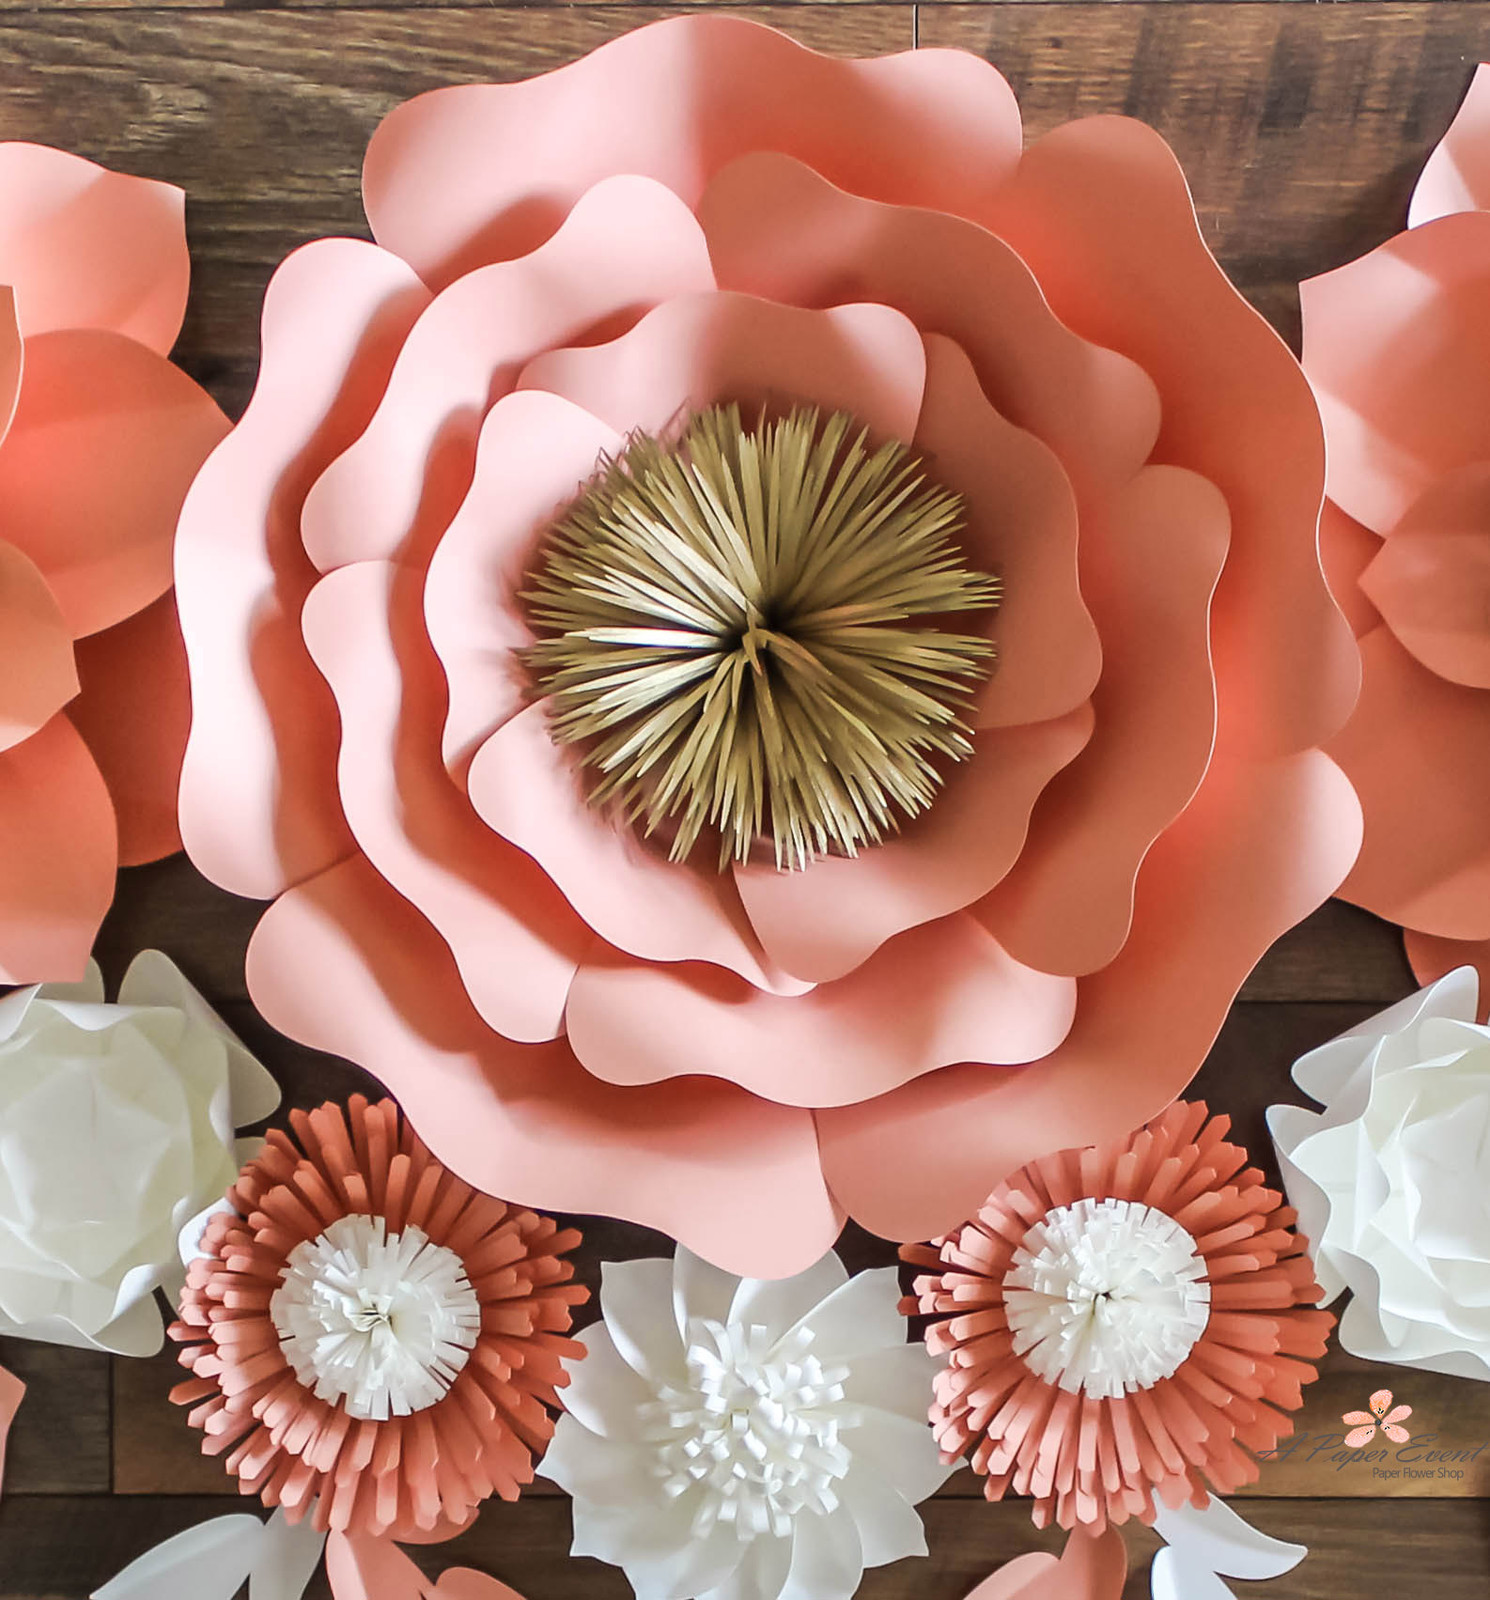 Designing paper flowers backdrops and weddingevent decor paper flower shop mightylinksfo